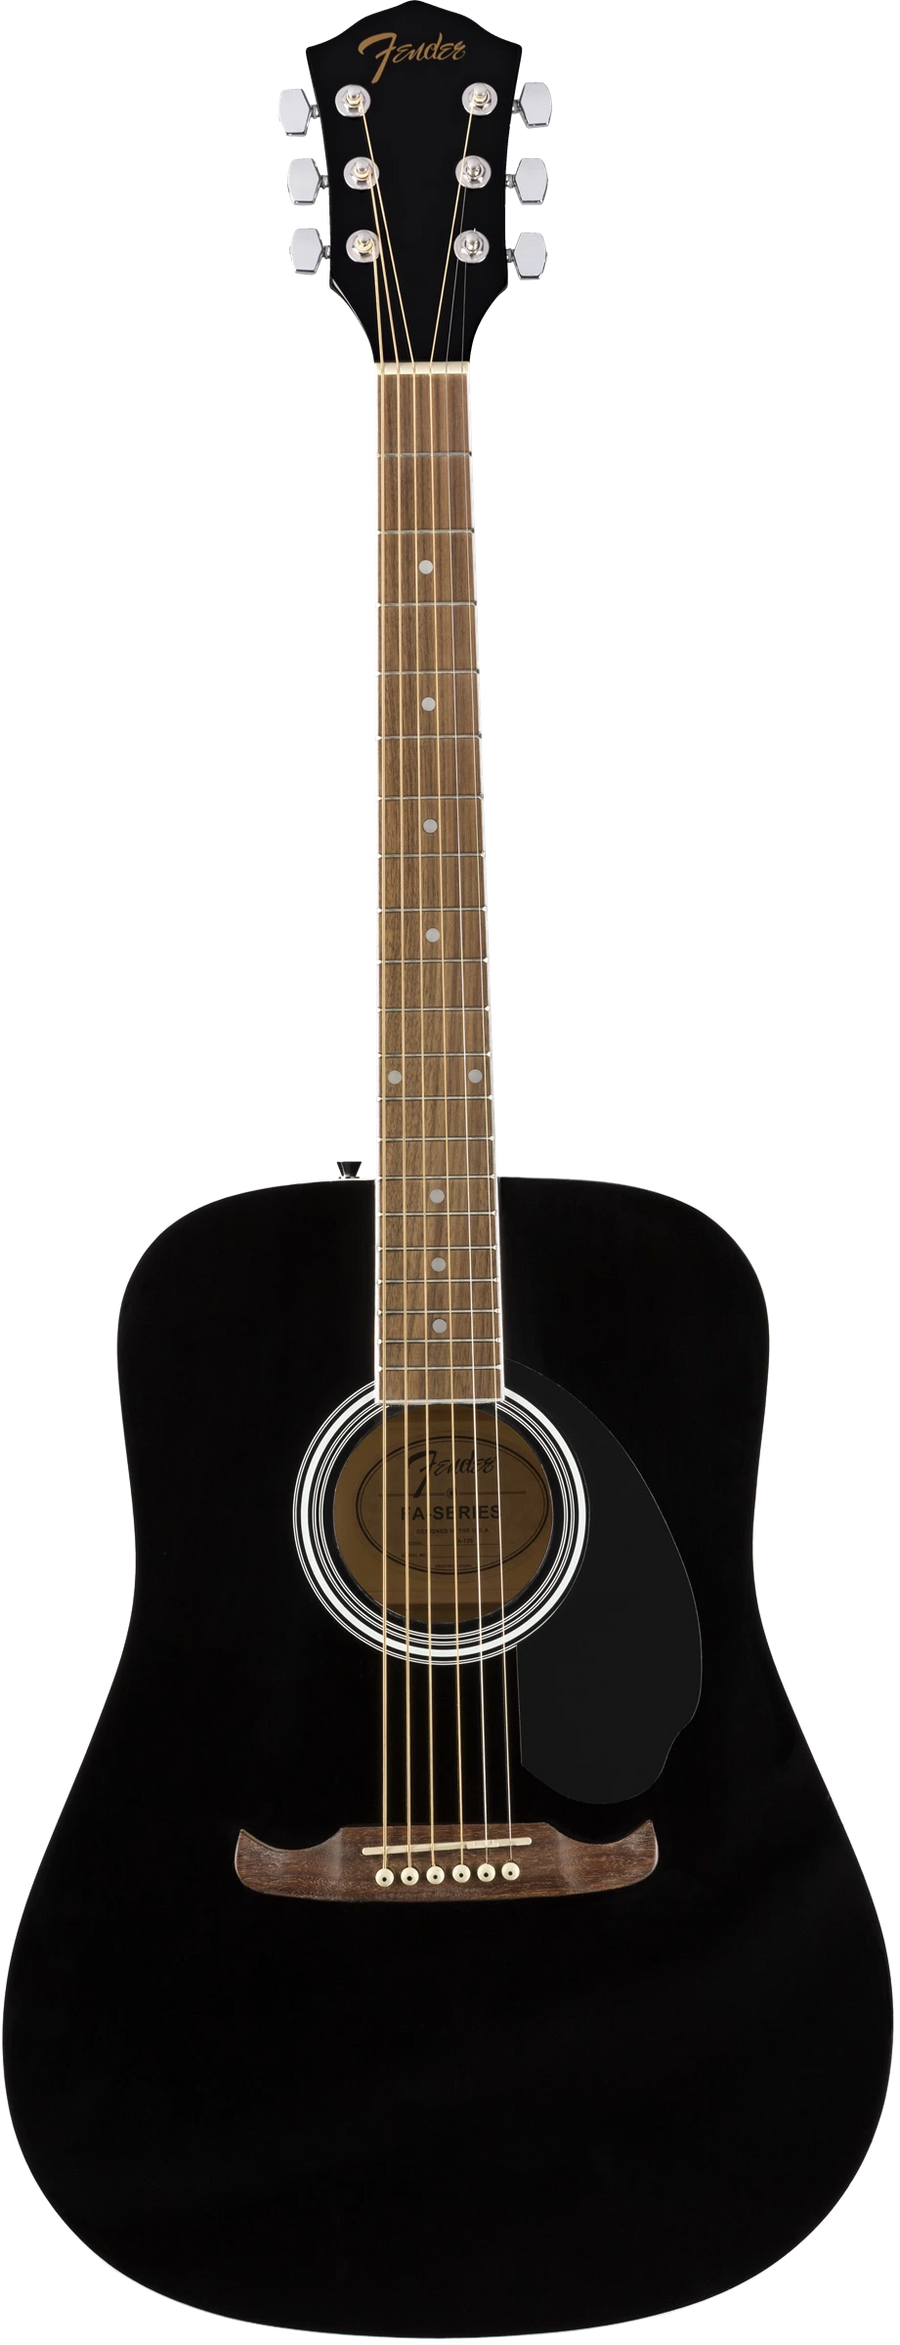 Fender FA-125 Dreadnought Black - Regent Sounds